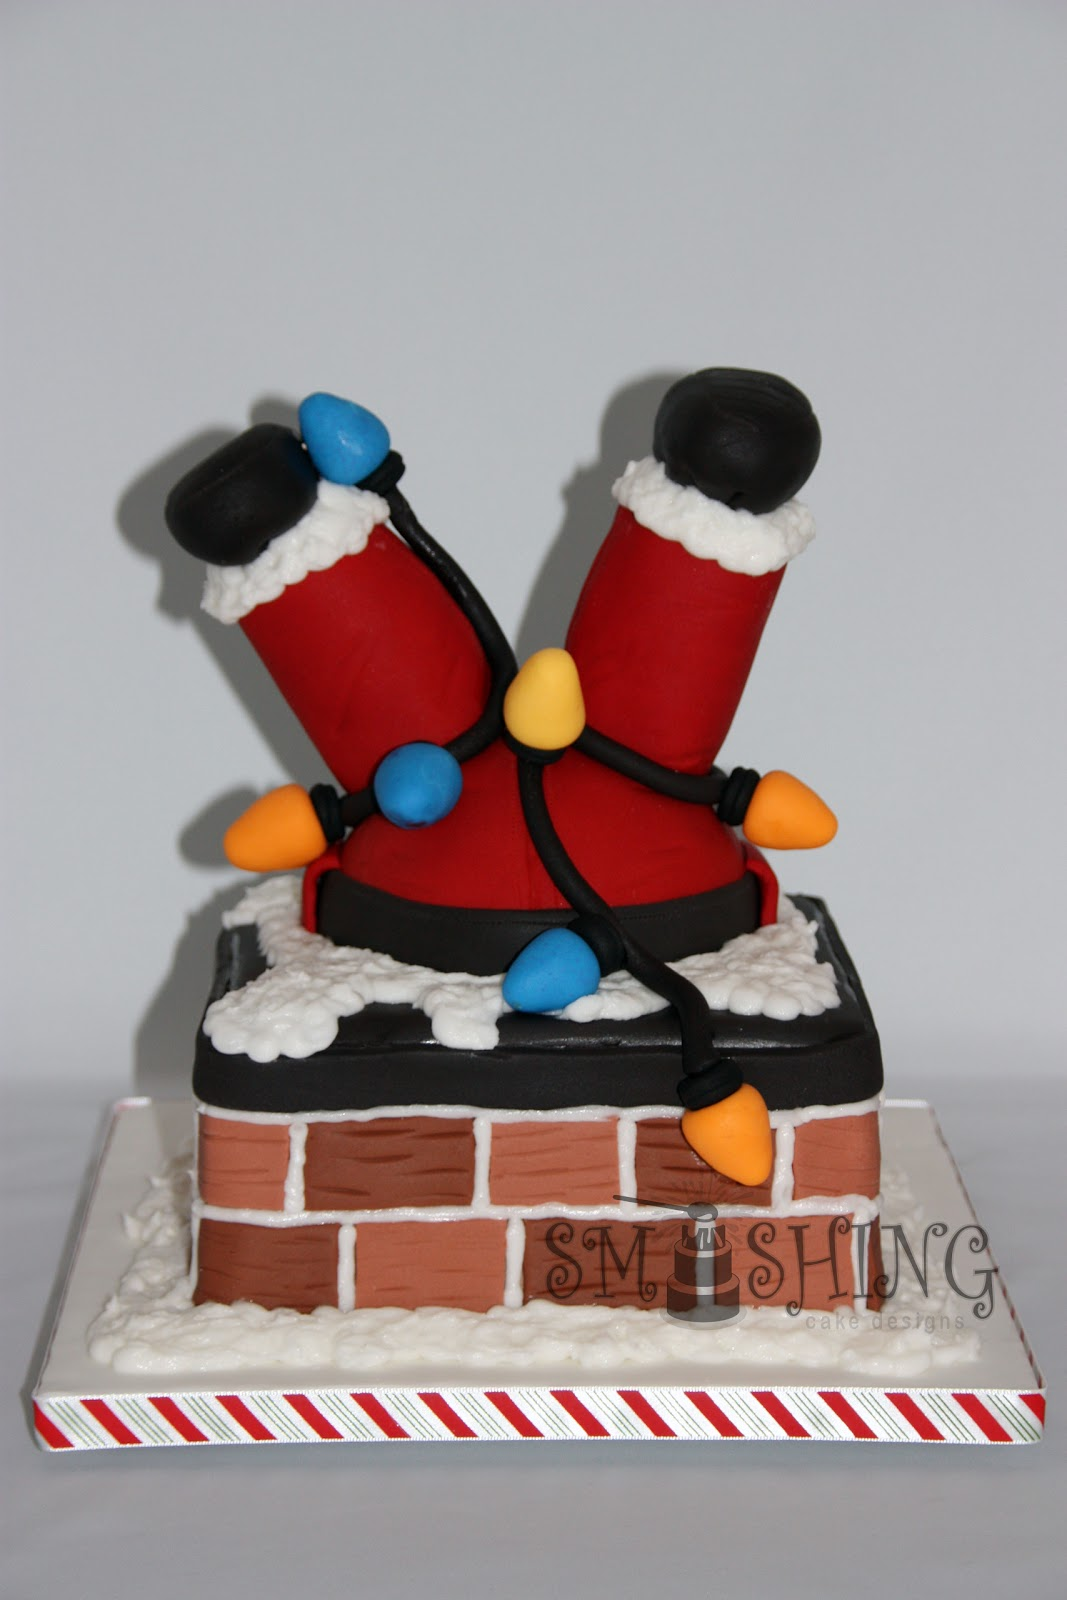 Smashing cake designs december 2010 Santa stuck in chimney cake